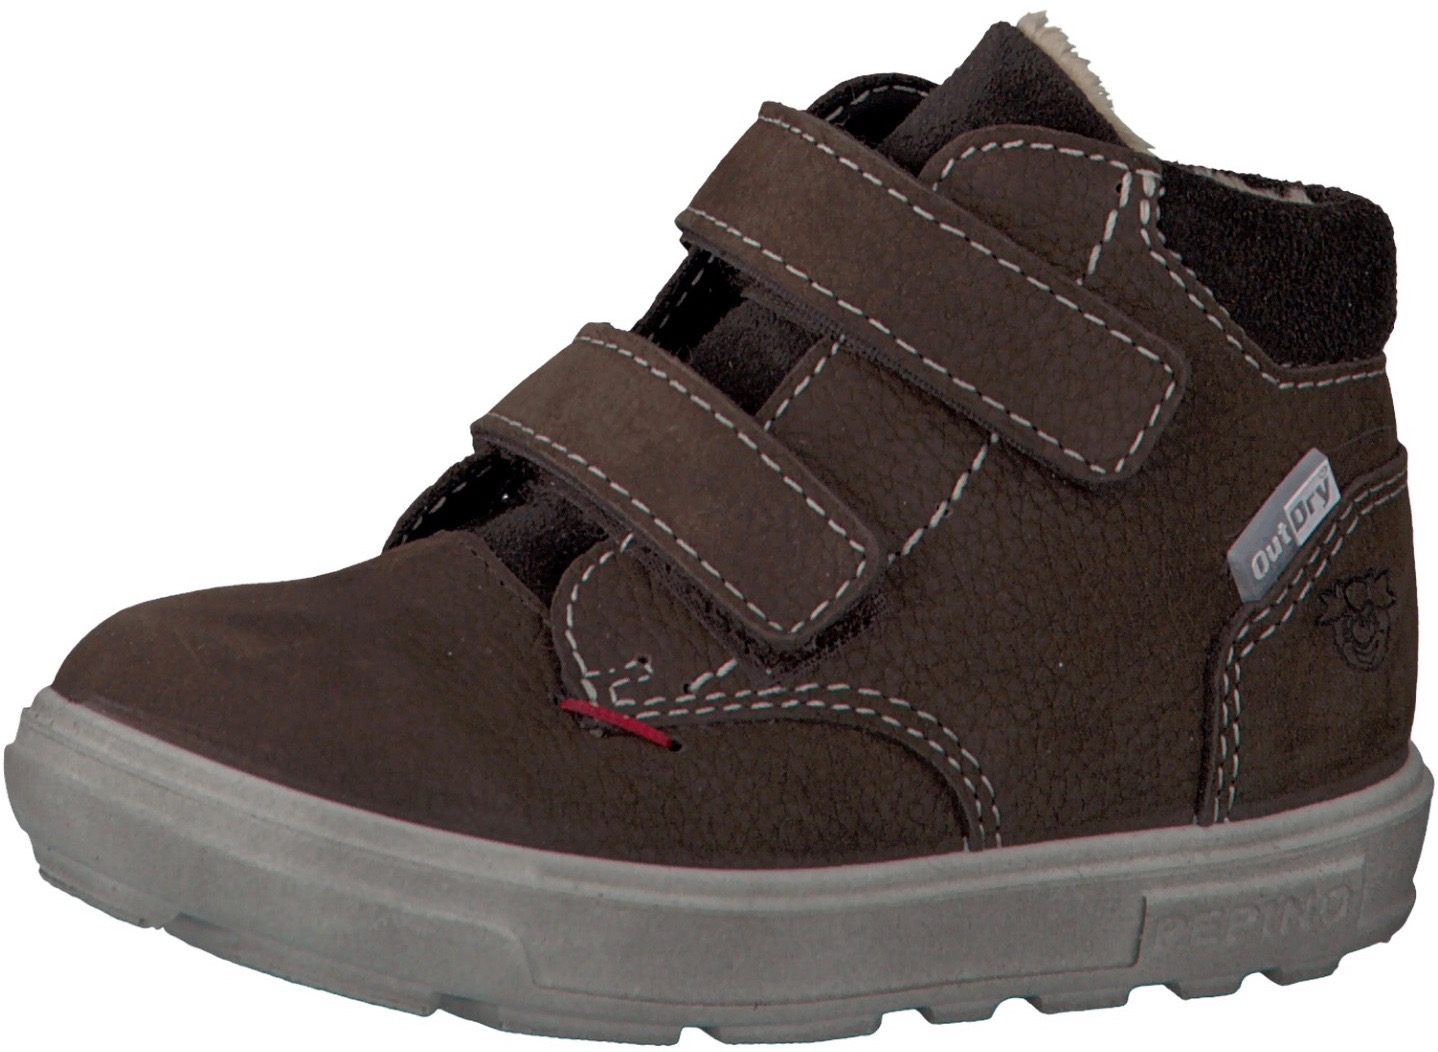 Brown leather trainers for toddlers